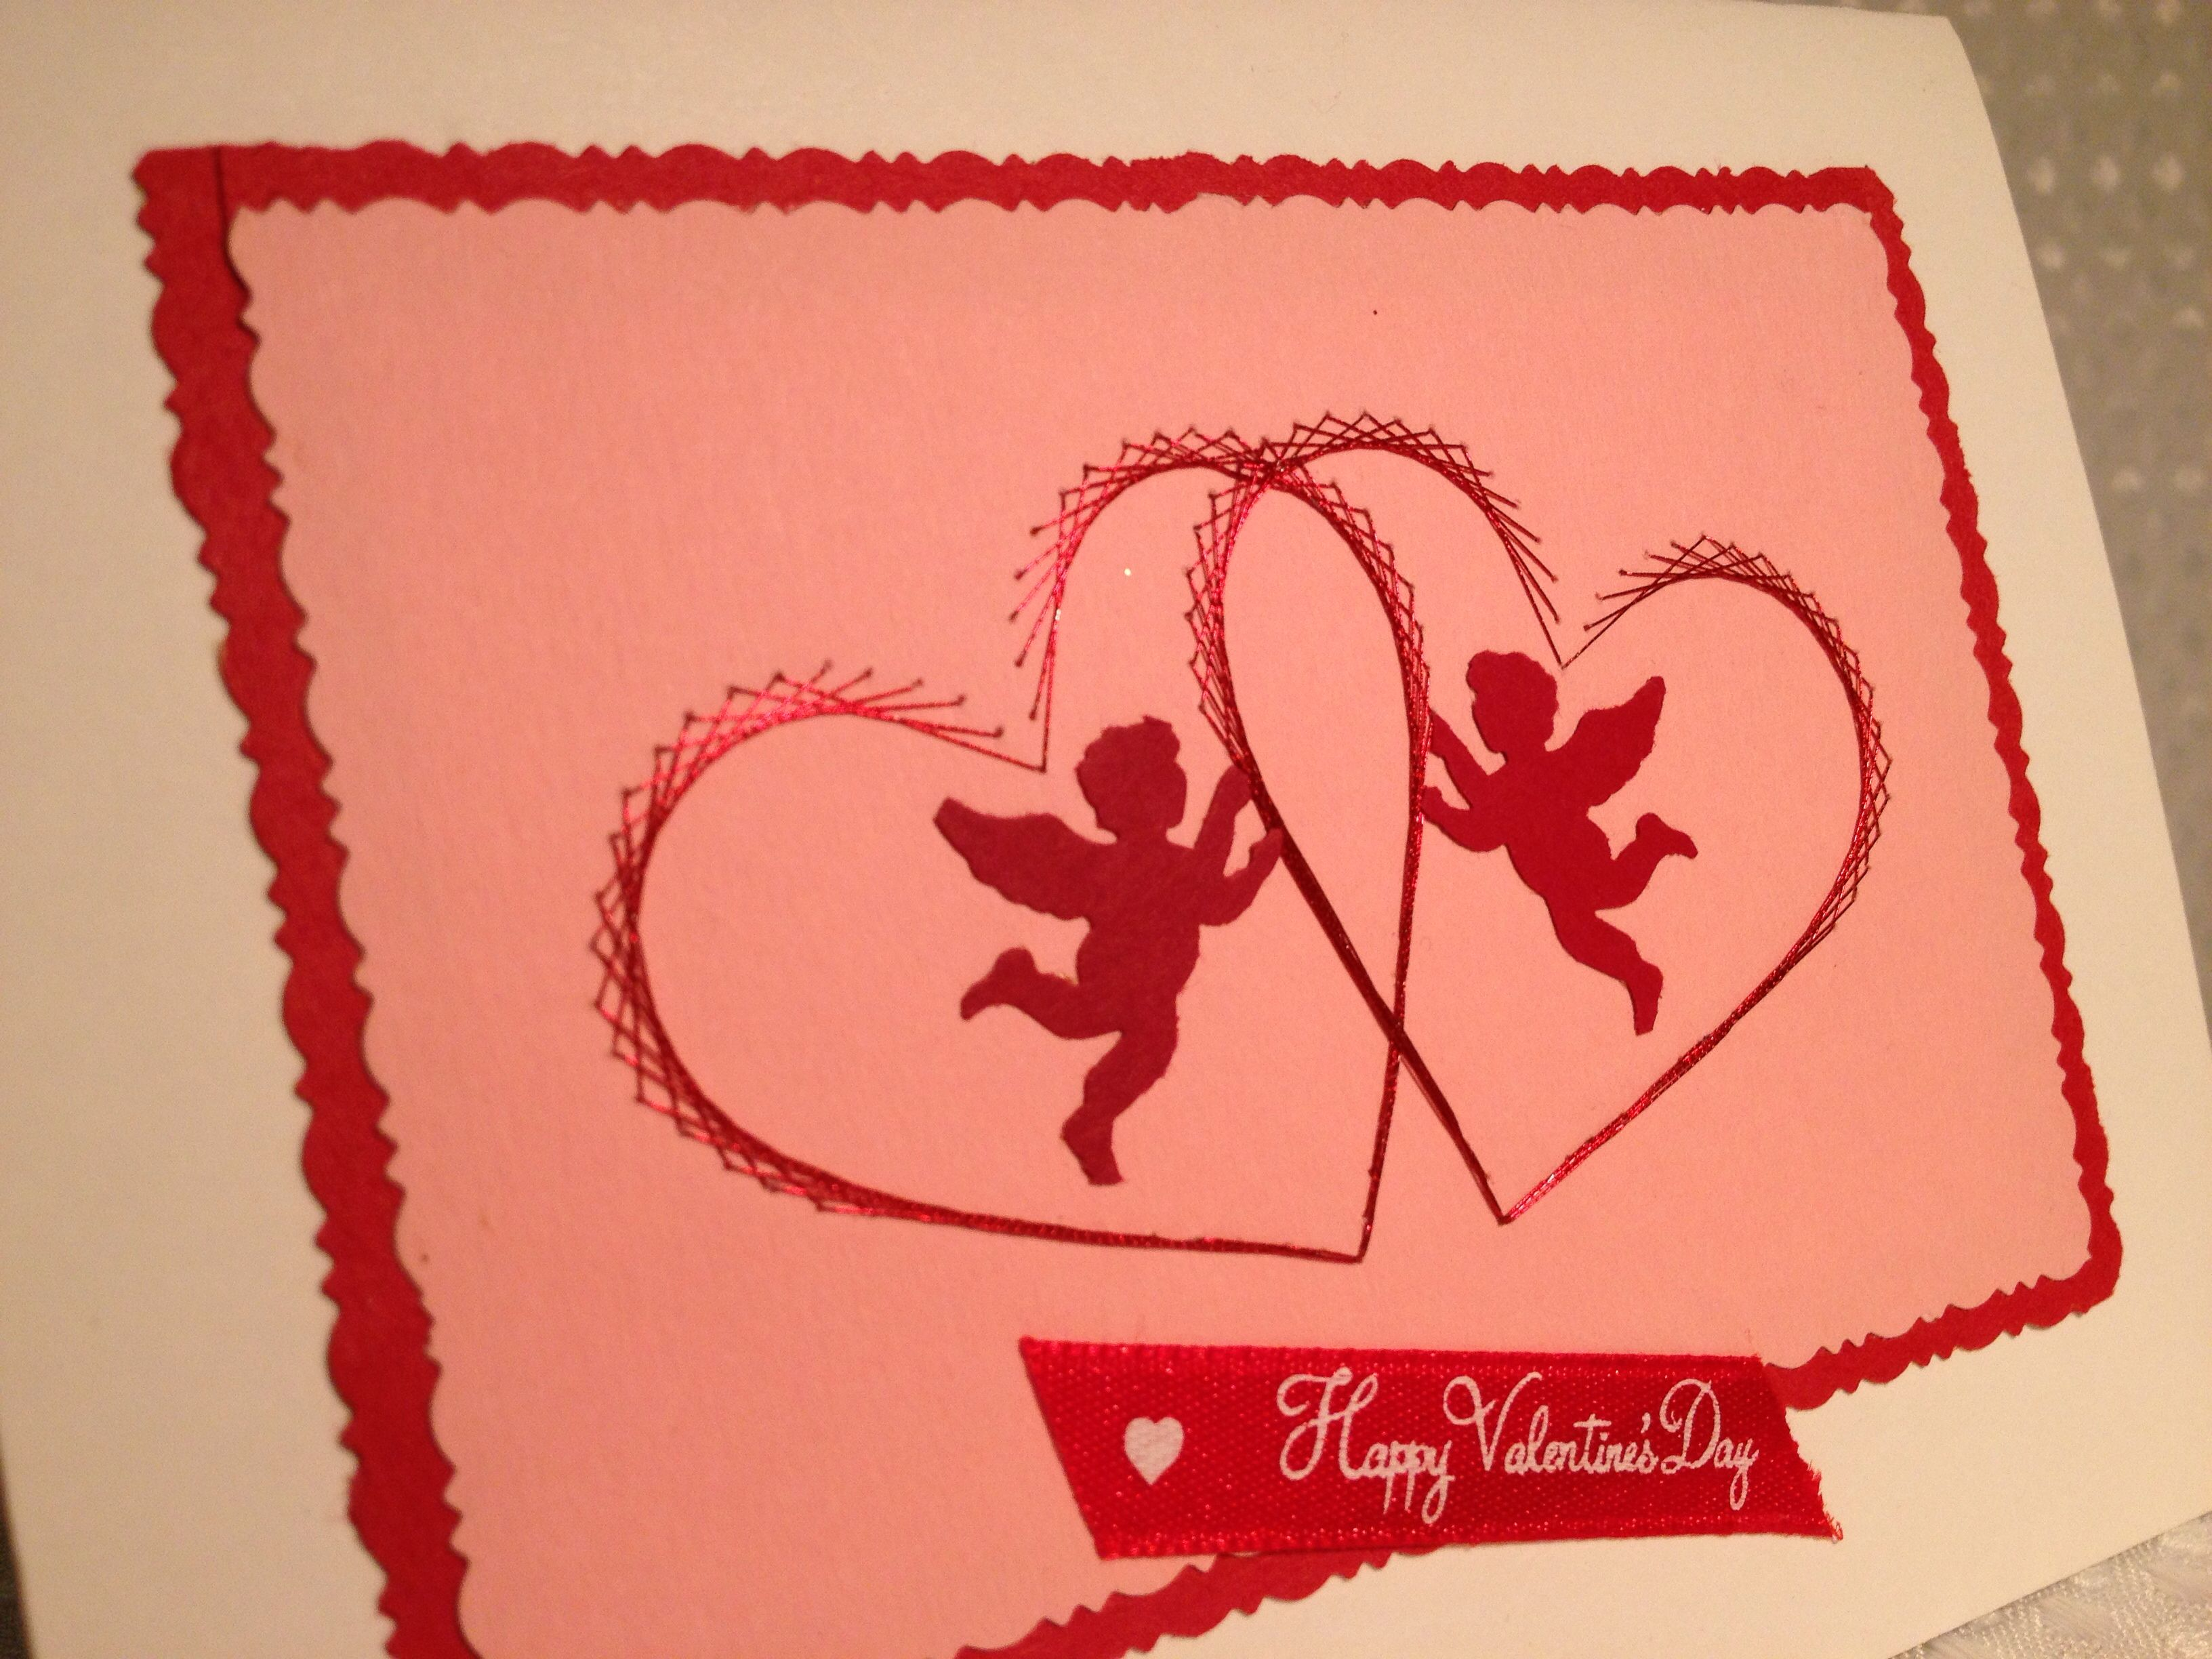 Stitched valentines card with Cupid